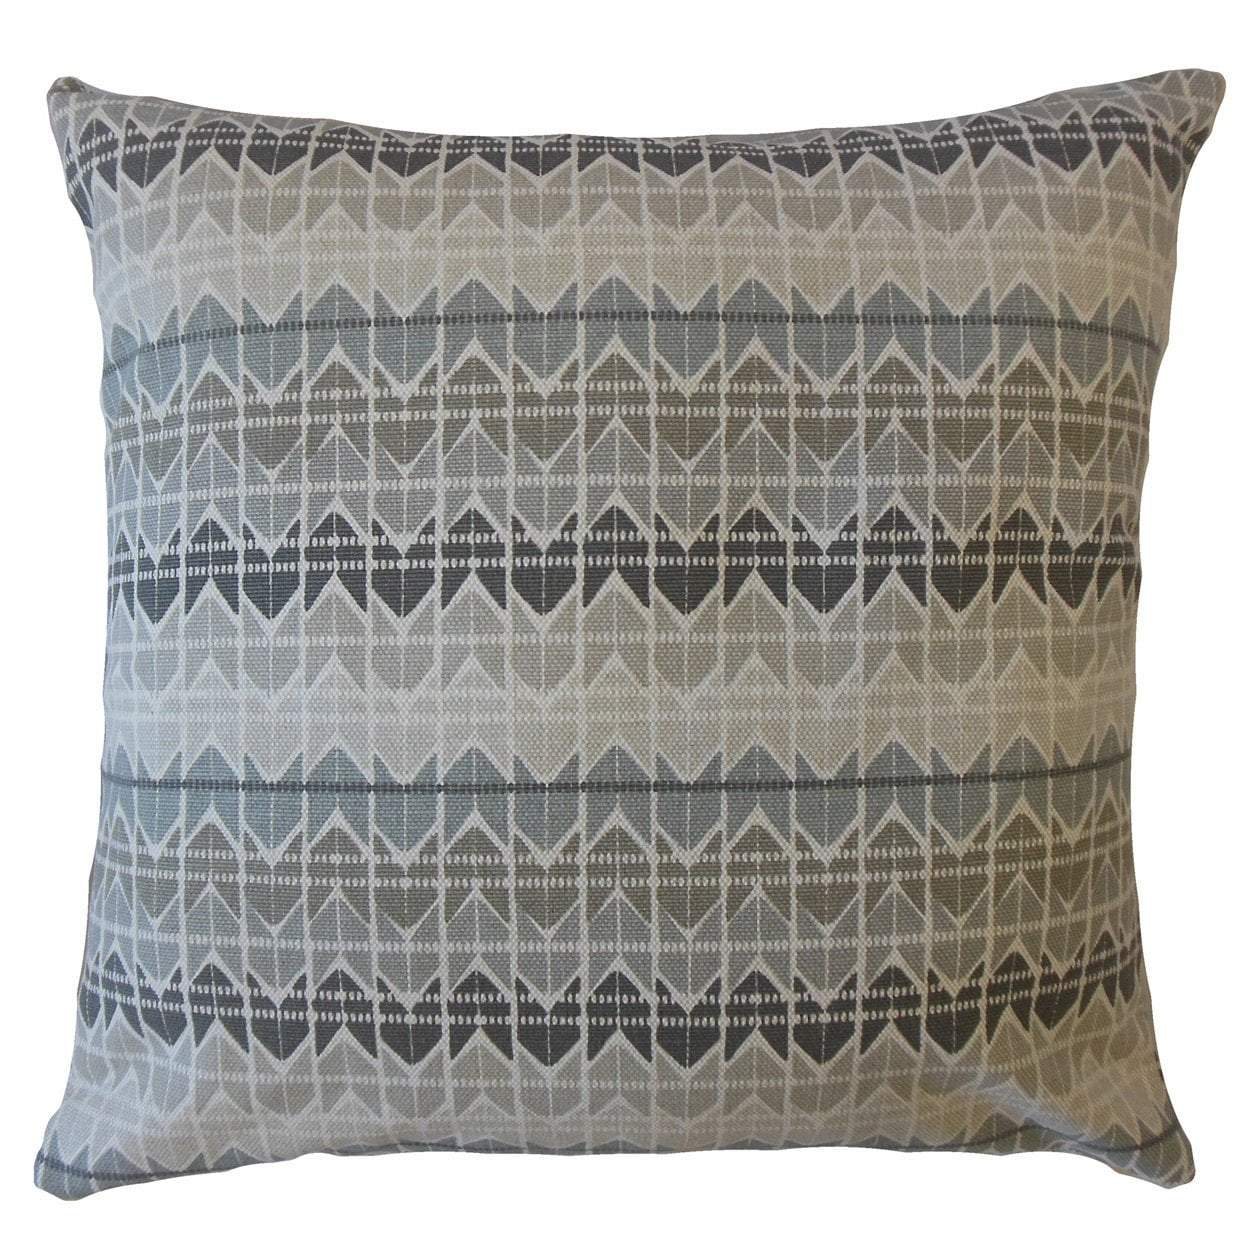 Landrum Throw Pillow Cover